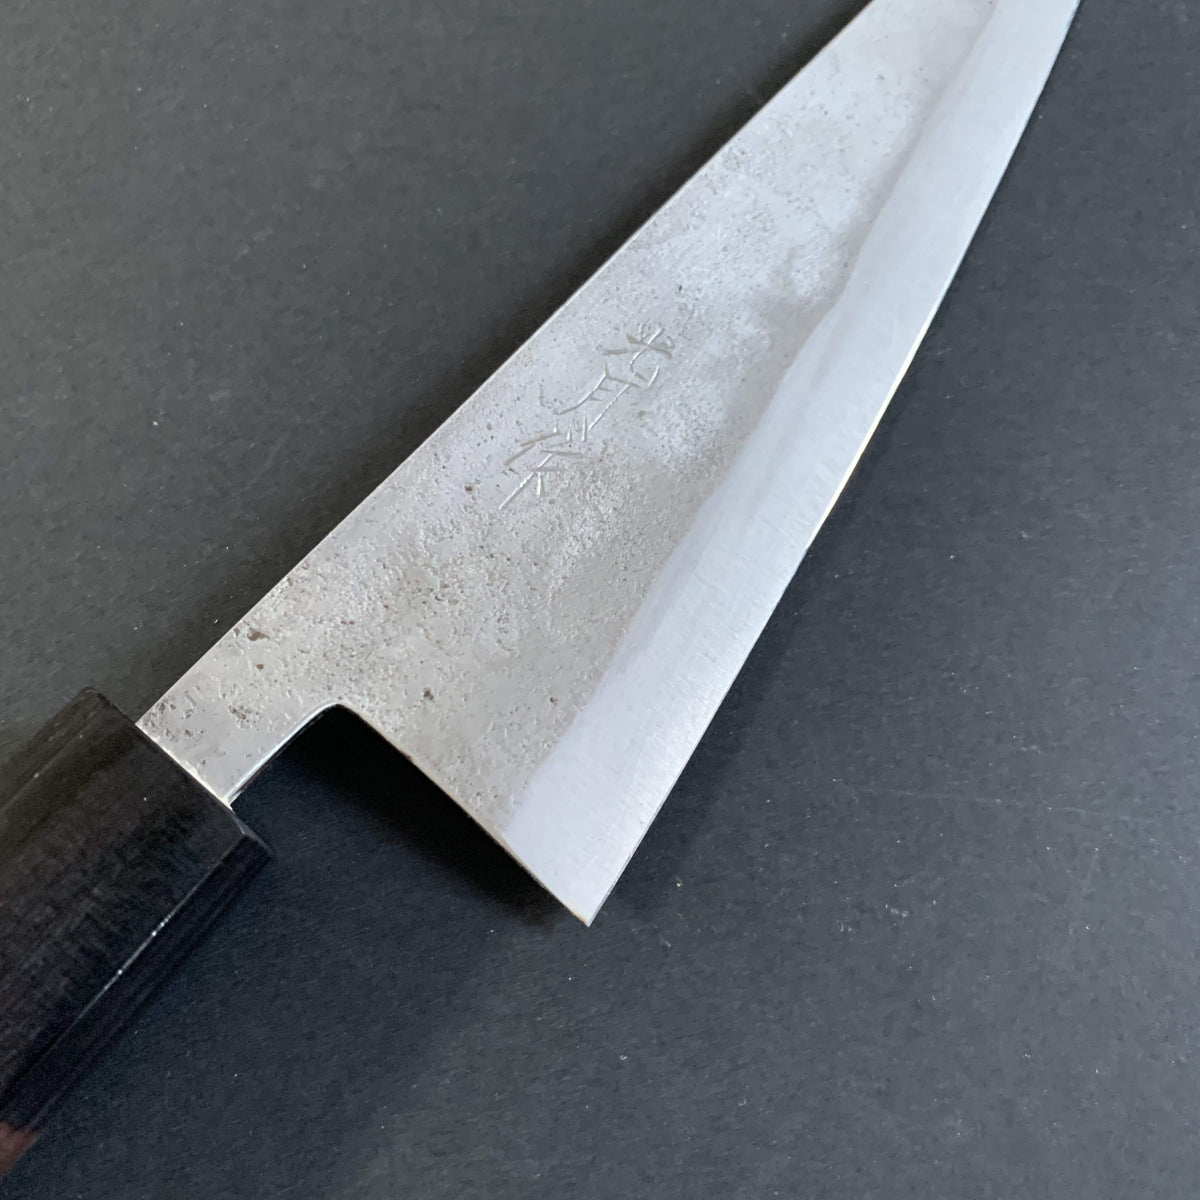 Honesuke knife, Shirogami 1 with stainless steel cladding, nashiji finish - Goko